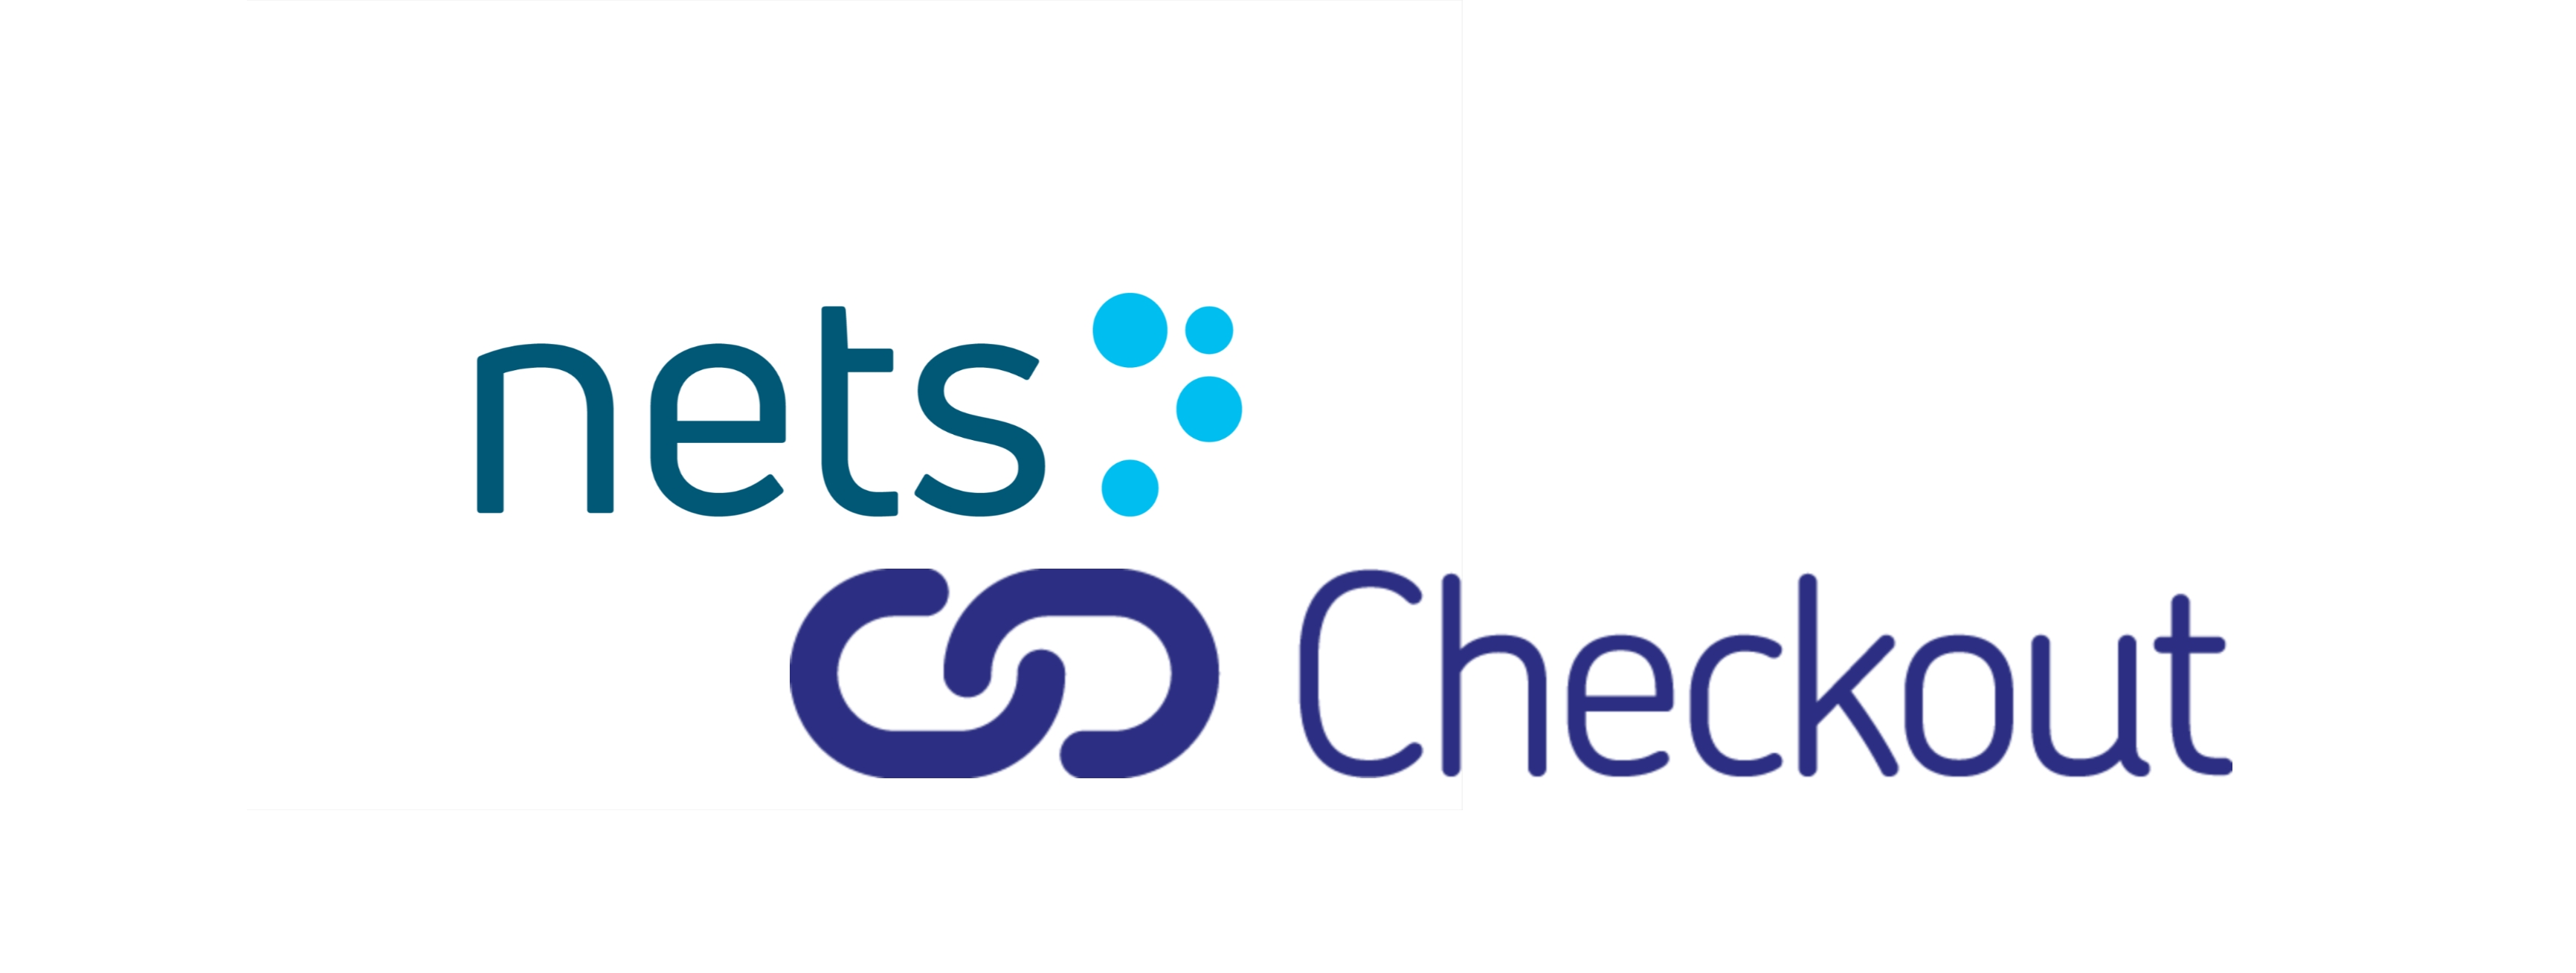 Nets Group Completes Acquisition of E-commerce Provider Checkout Finland